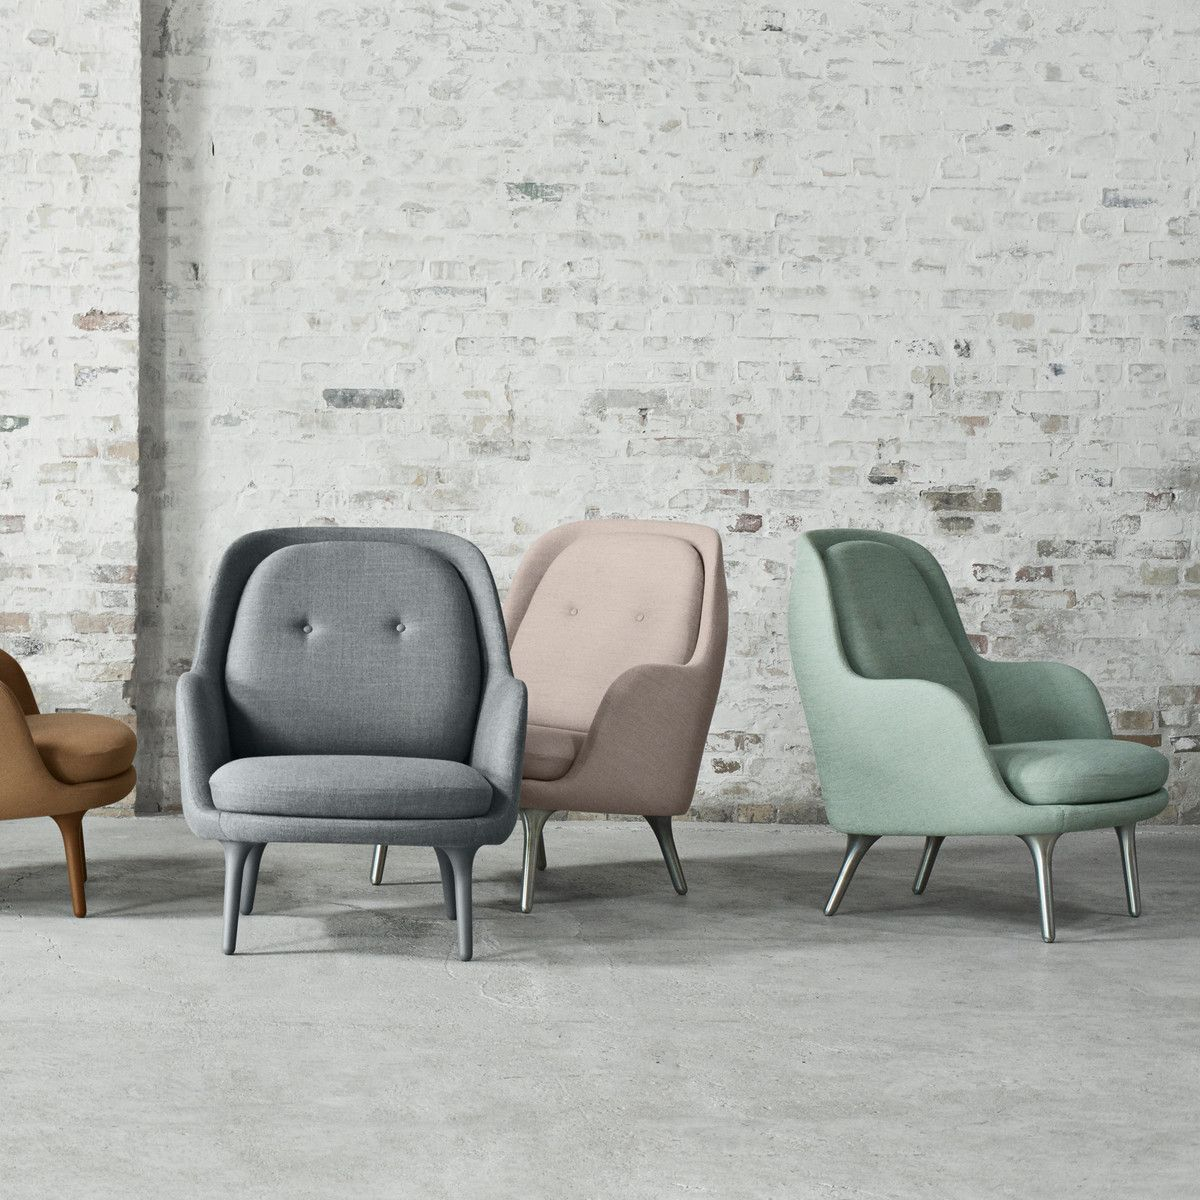 Bequeme Sessel Design Scoonwoon Fritz Hansen Fri Furniture Chair Fritz Hansen